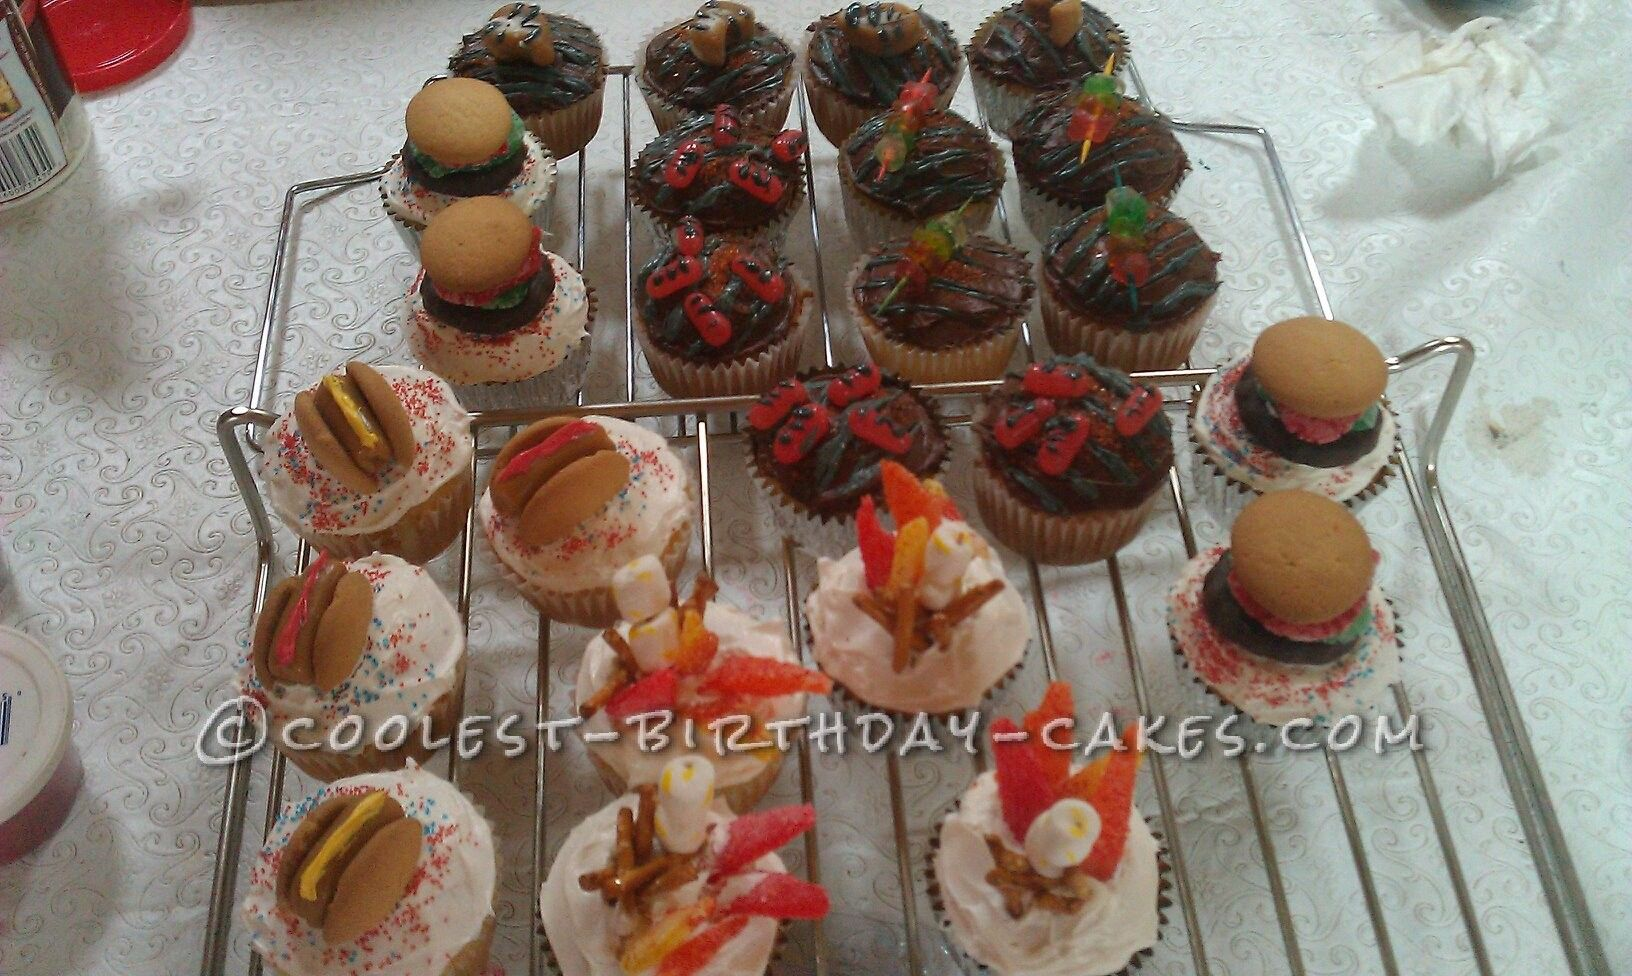 Coolest BBQ Fun Day Cupcakes... This website is the Pinterest of birthday cake ideas